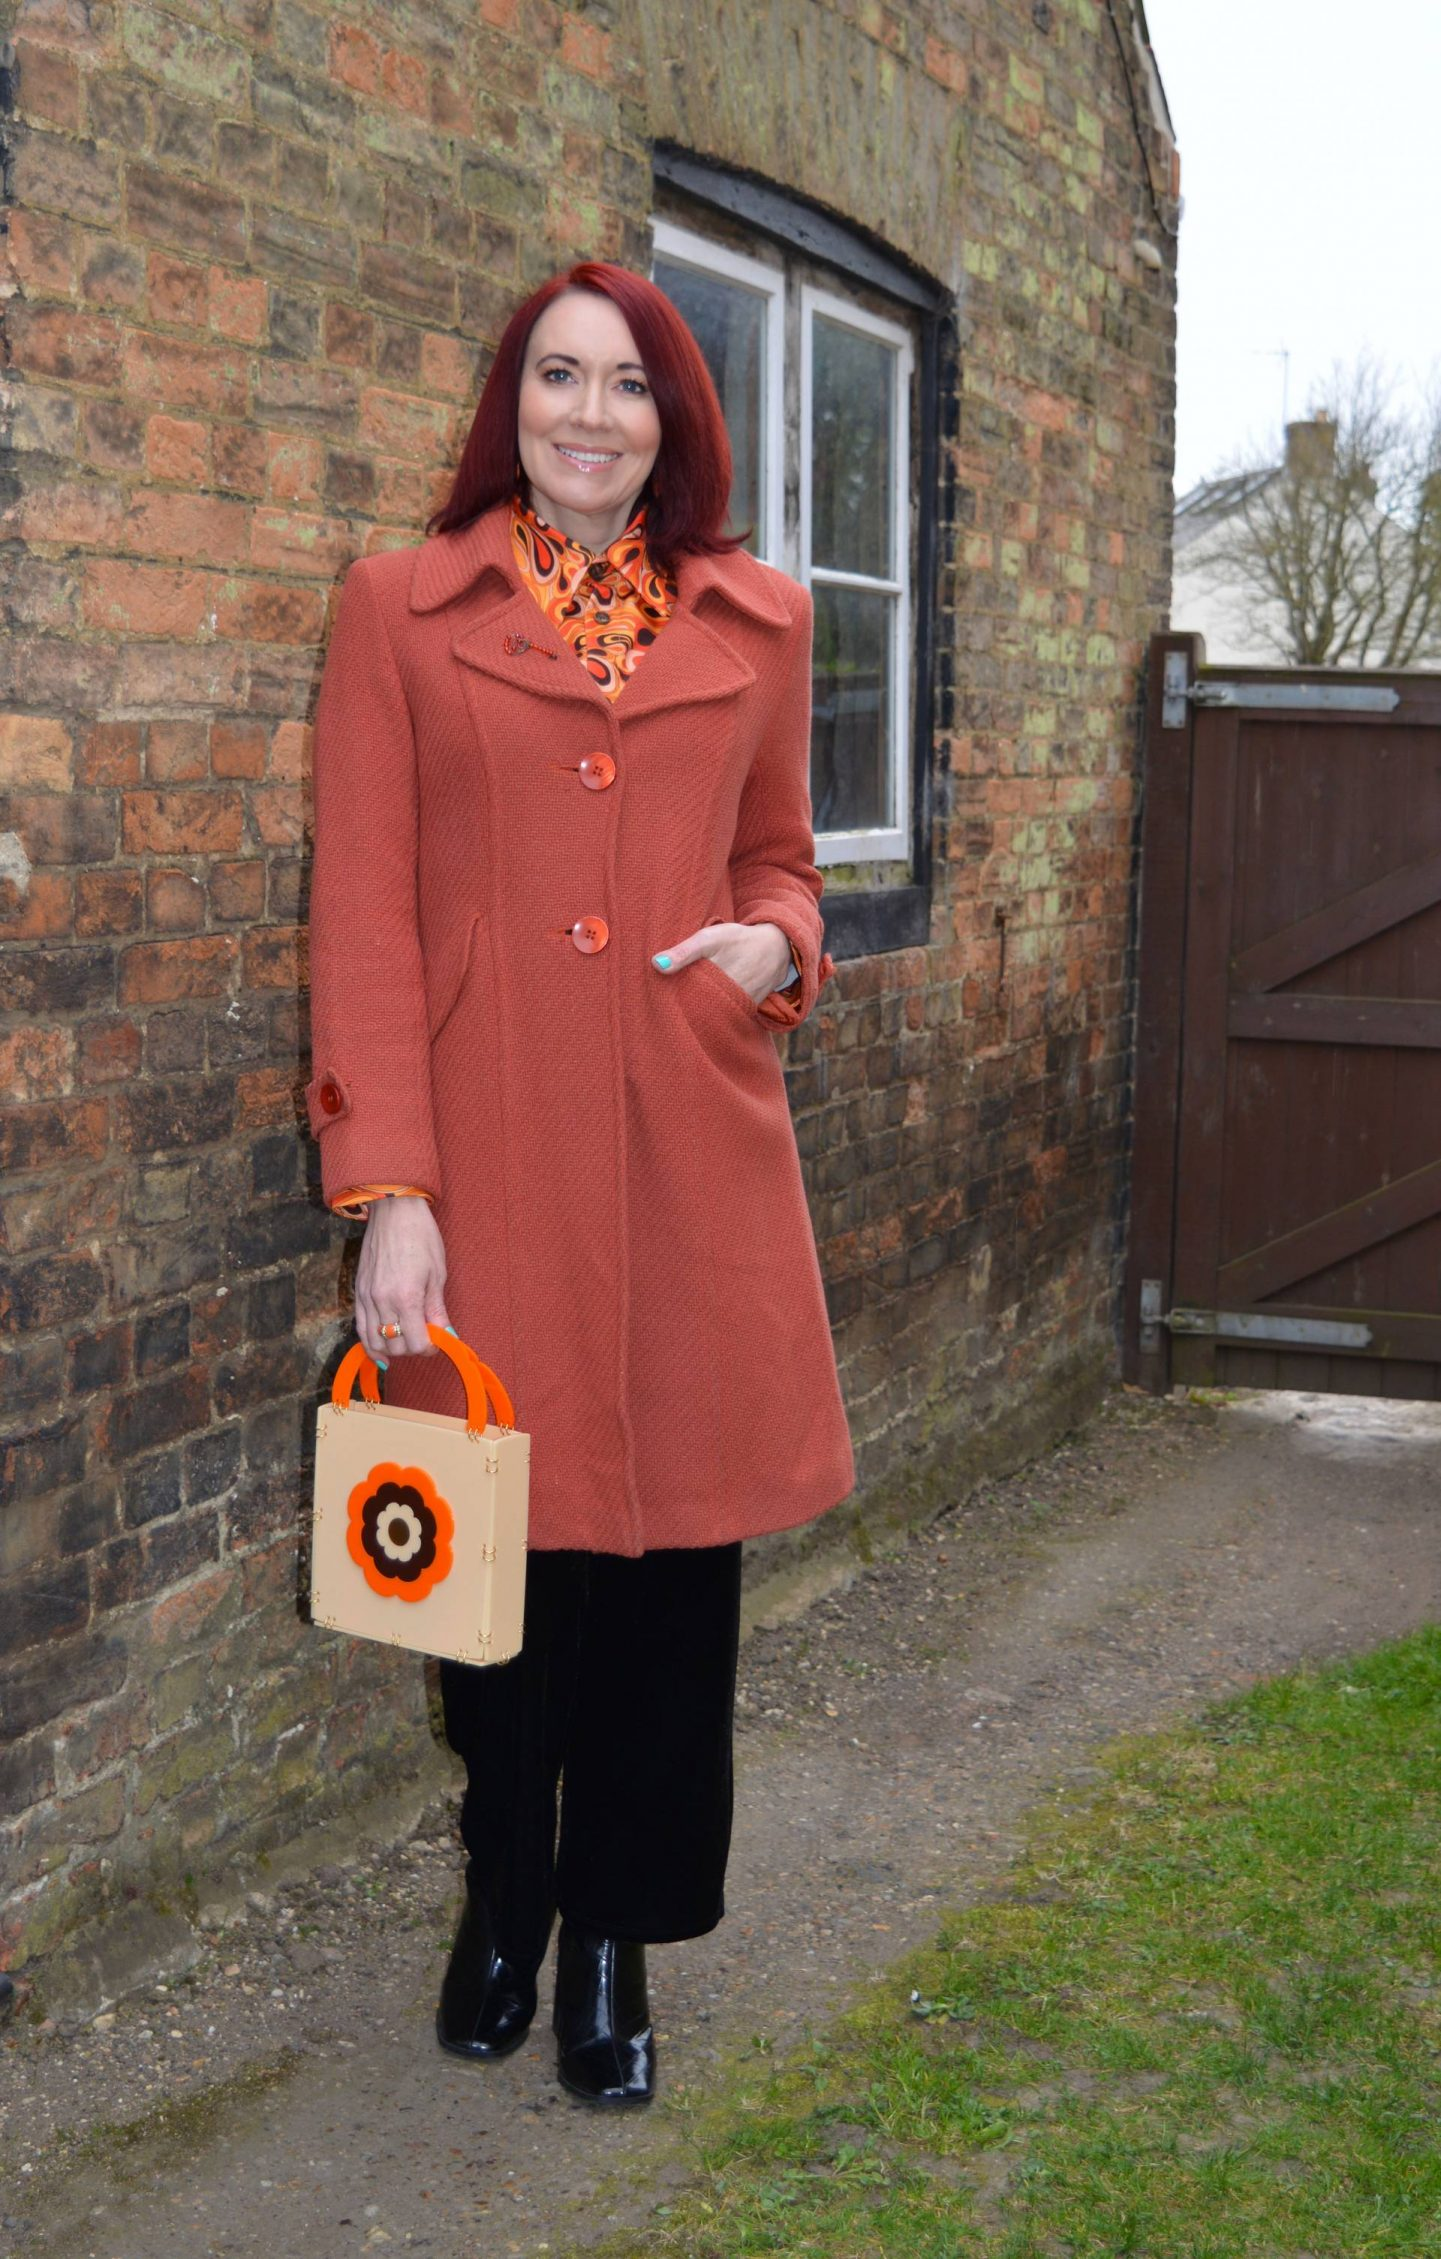 Wearing Our Everyday Luxe, The Hippie Shake shirt, Wallis orange coat, Ada Binks bag, Very black velvet trousers, Marks & Spencer black square toe ankle boots